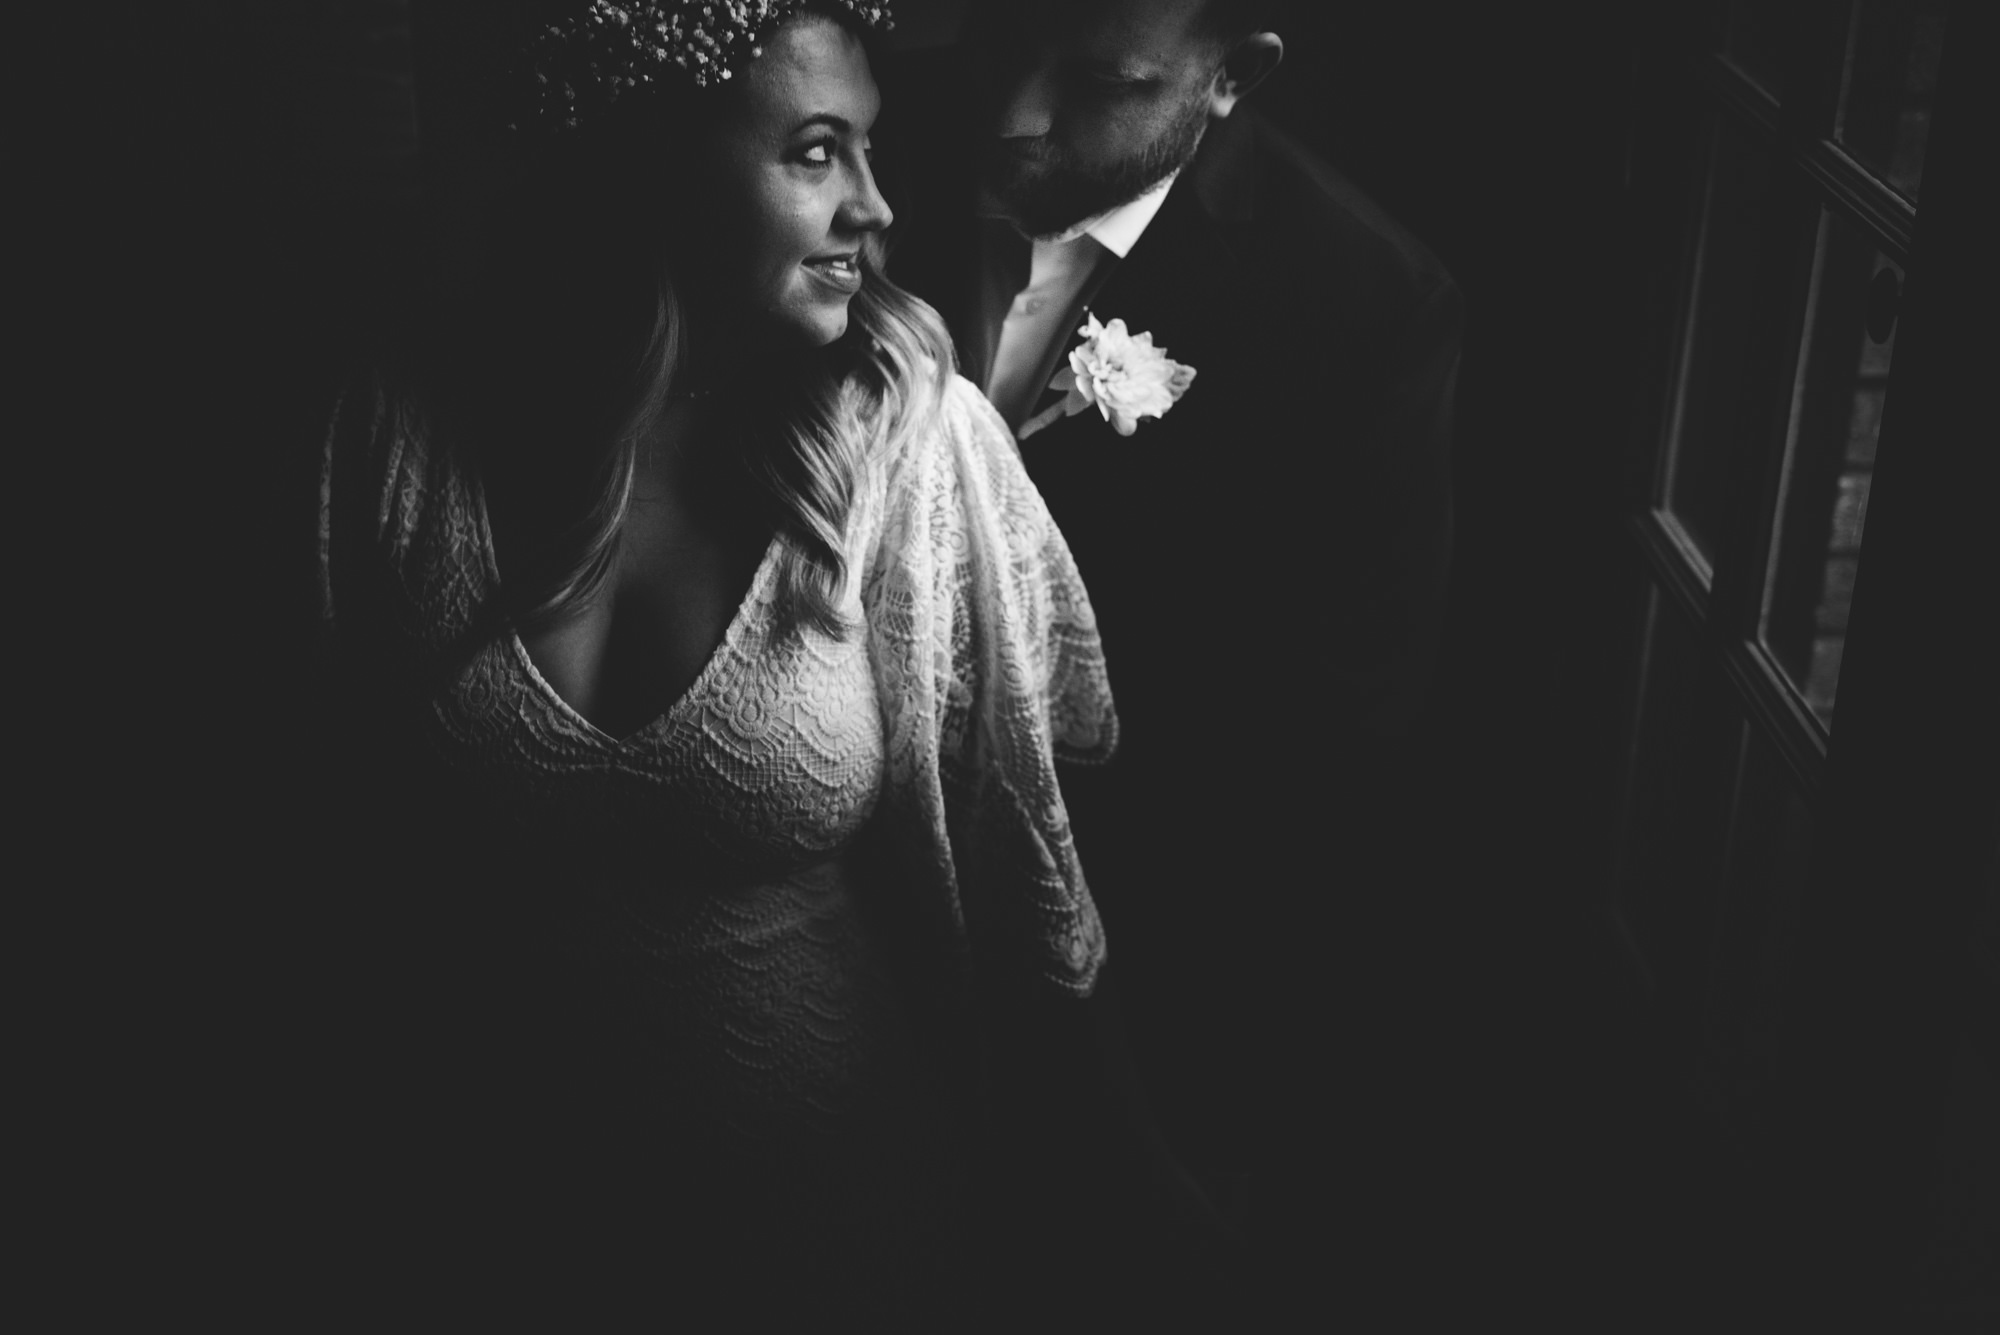 Wedding_Bethany-Josh-553-wedding-des-moines-bethany-josh.jpg